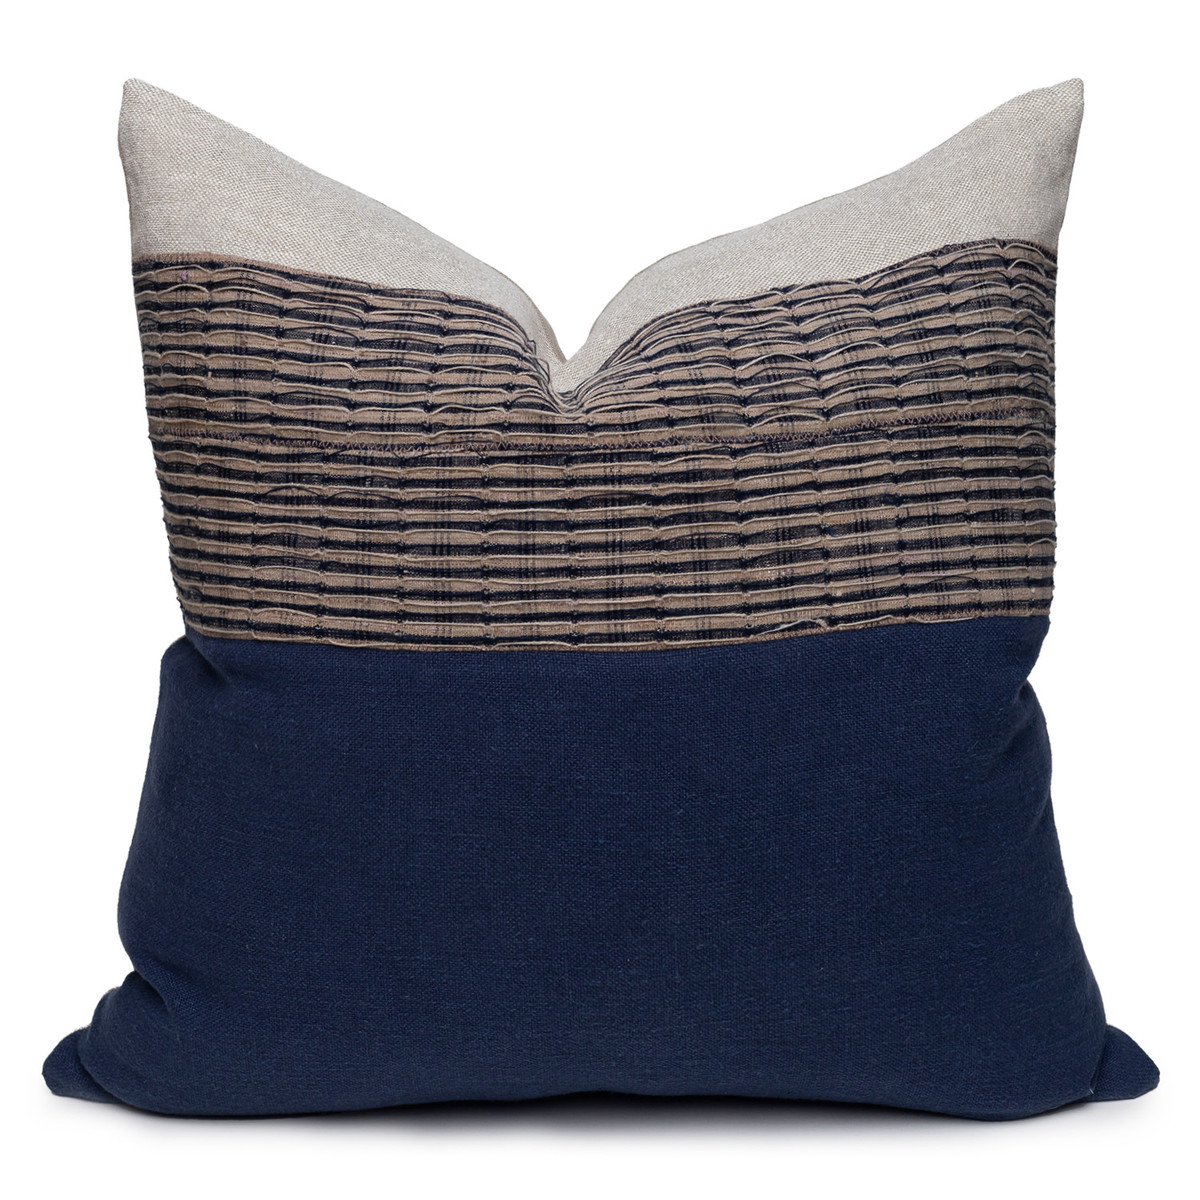 Nora Luxe Vintage Pillow with African Aso Oke Textiles and Linen in Natural & Navy-22- Front VIEW